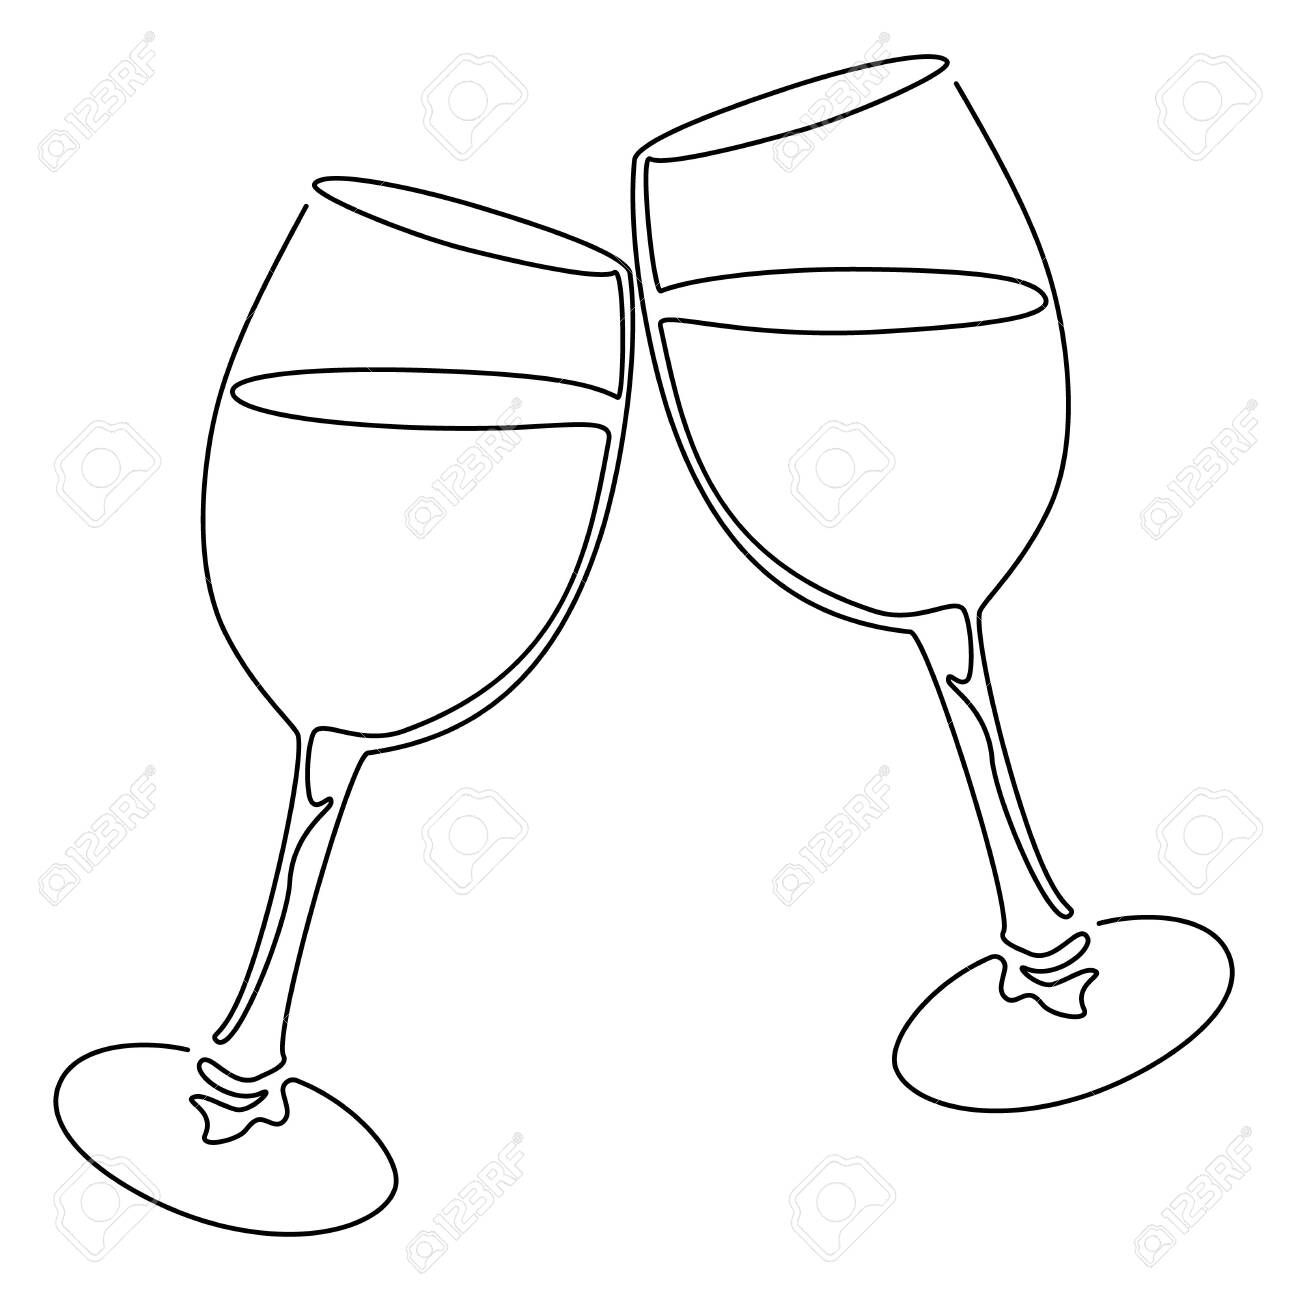 36+ Champagne glasses clipart black and white information